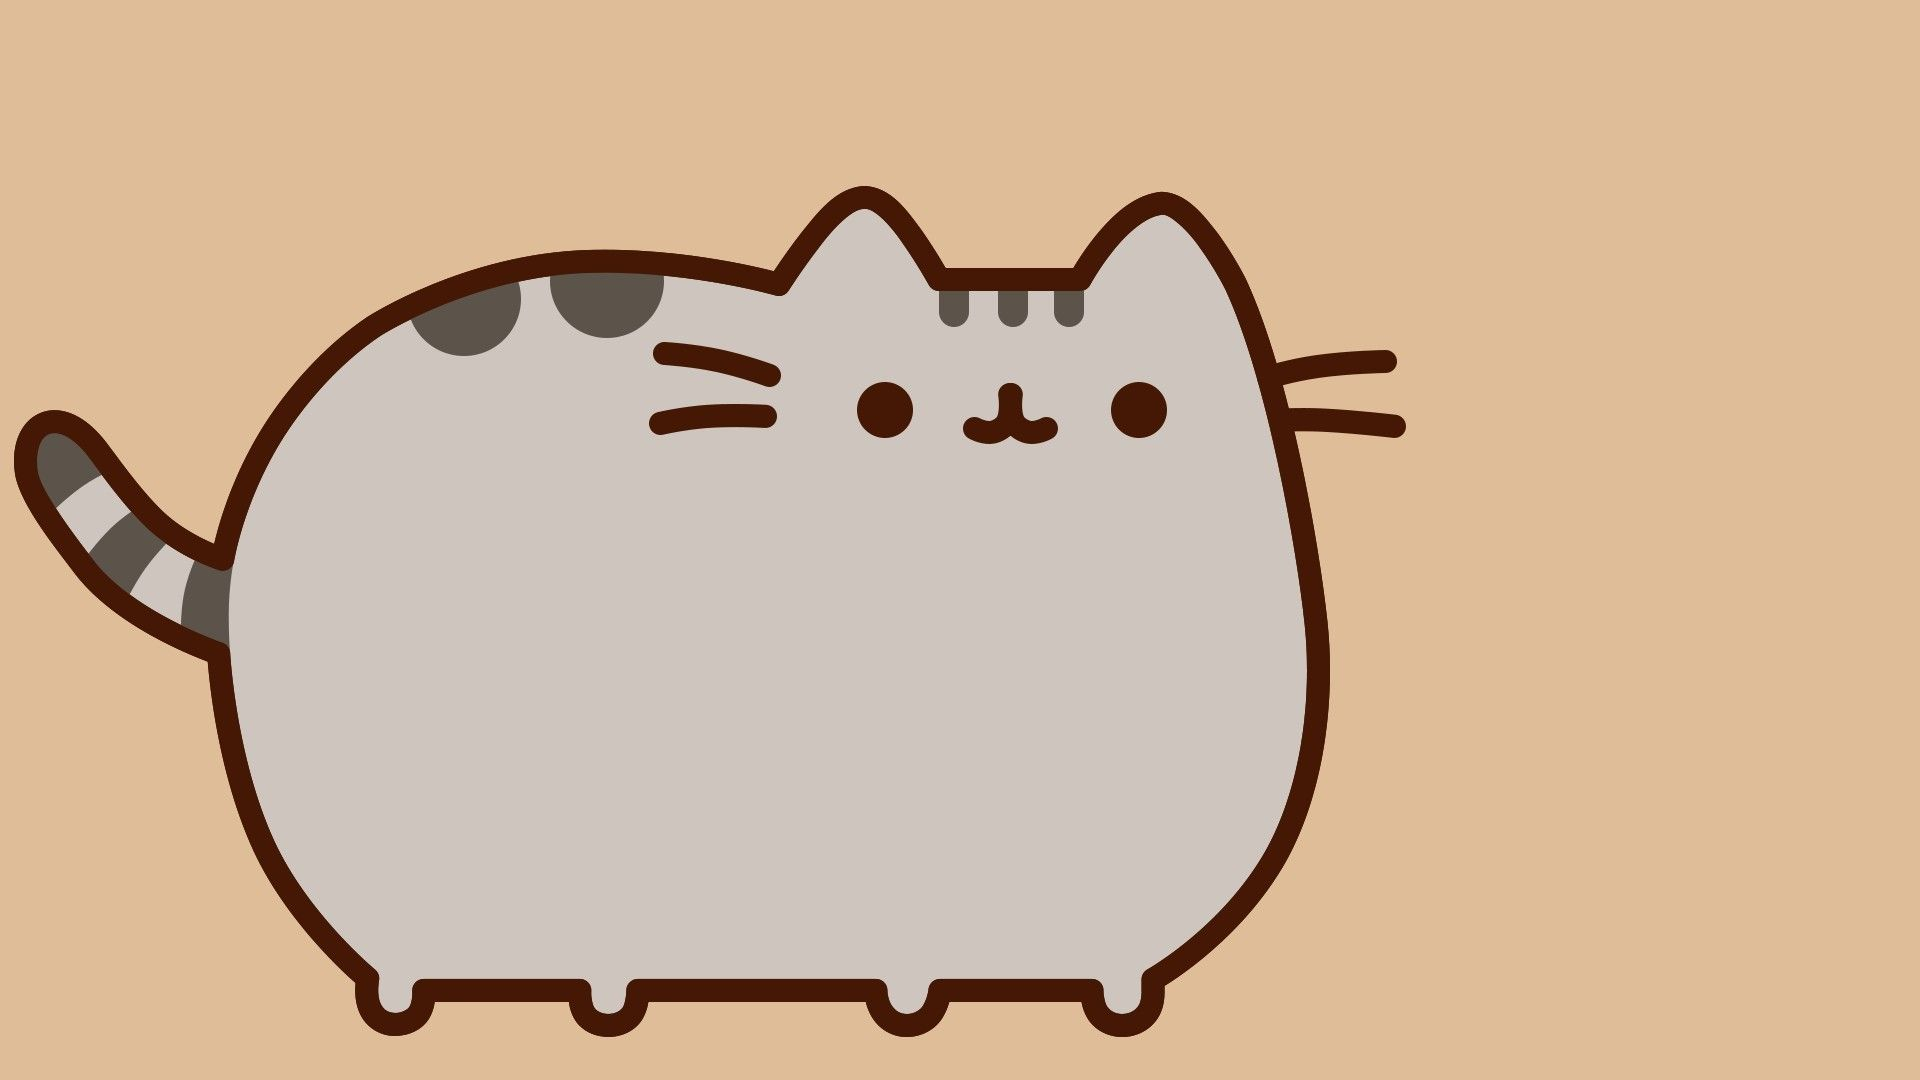 1920x1080 1920x1080 Most Popular Pusheen Wallpaper 1920x1080 Pusheen Cat Pusheen Ipad Mini Wallpaper